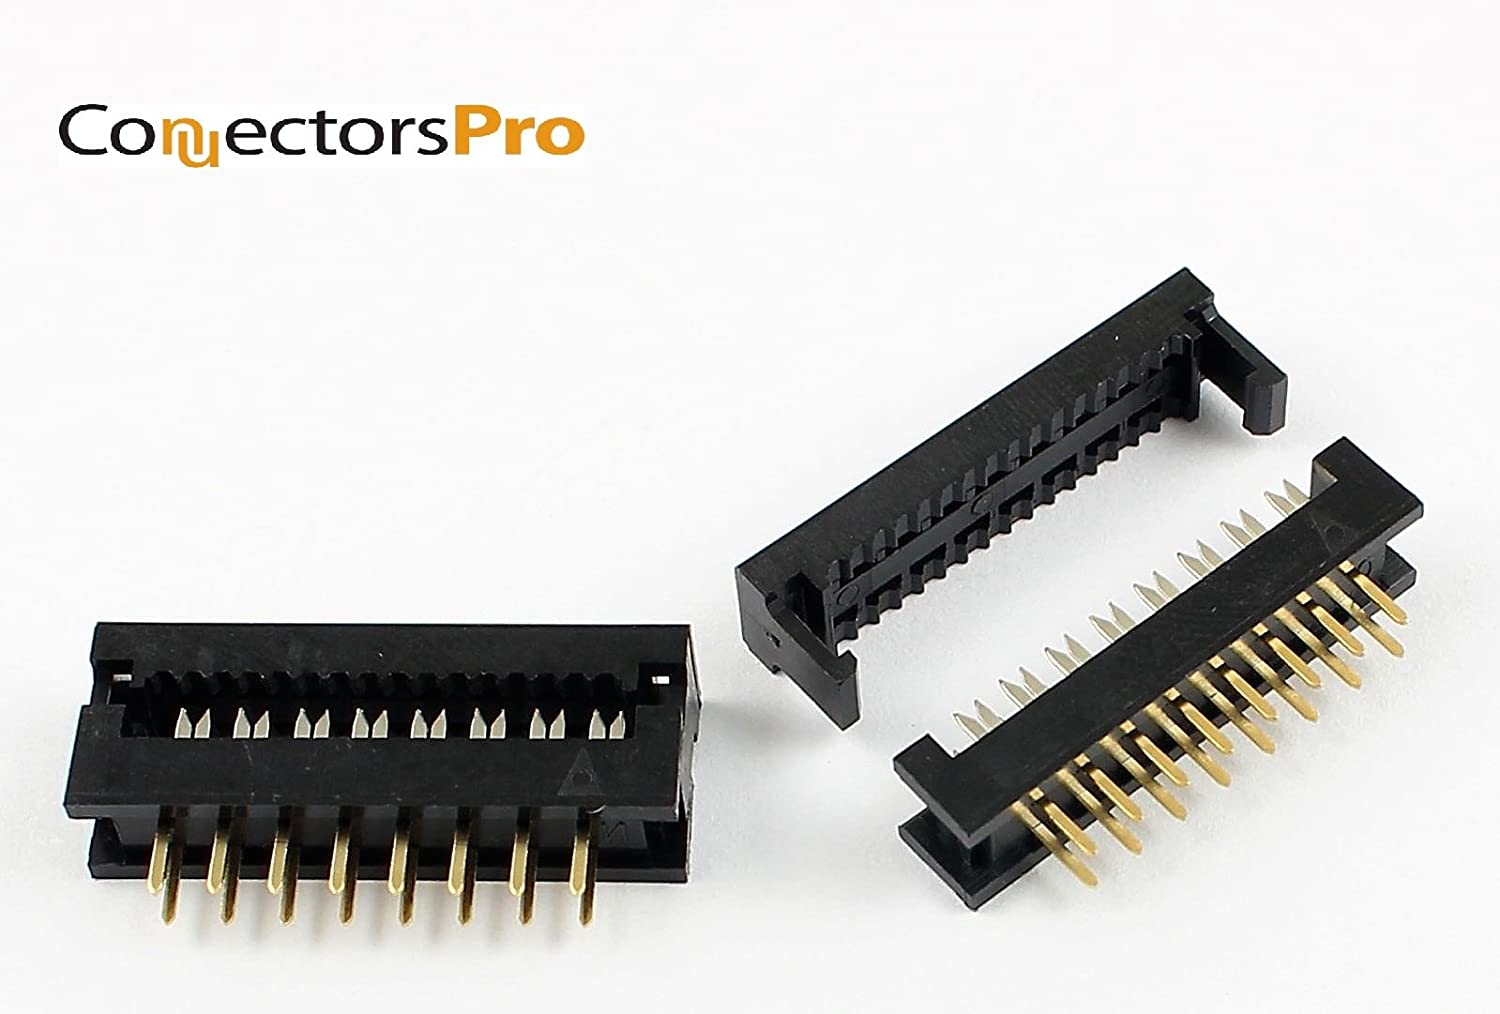 Amazon Com Connectors Pro Idc 2x8 16 Pins 2 54mm Male Dual Row Transition Plugs For 1 27mm Flat Ribbon Cable 10 Pack Fd 16p Home Audio Theater